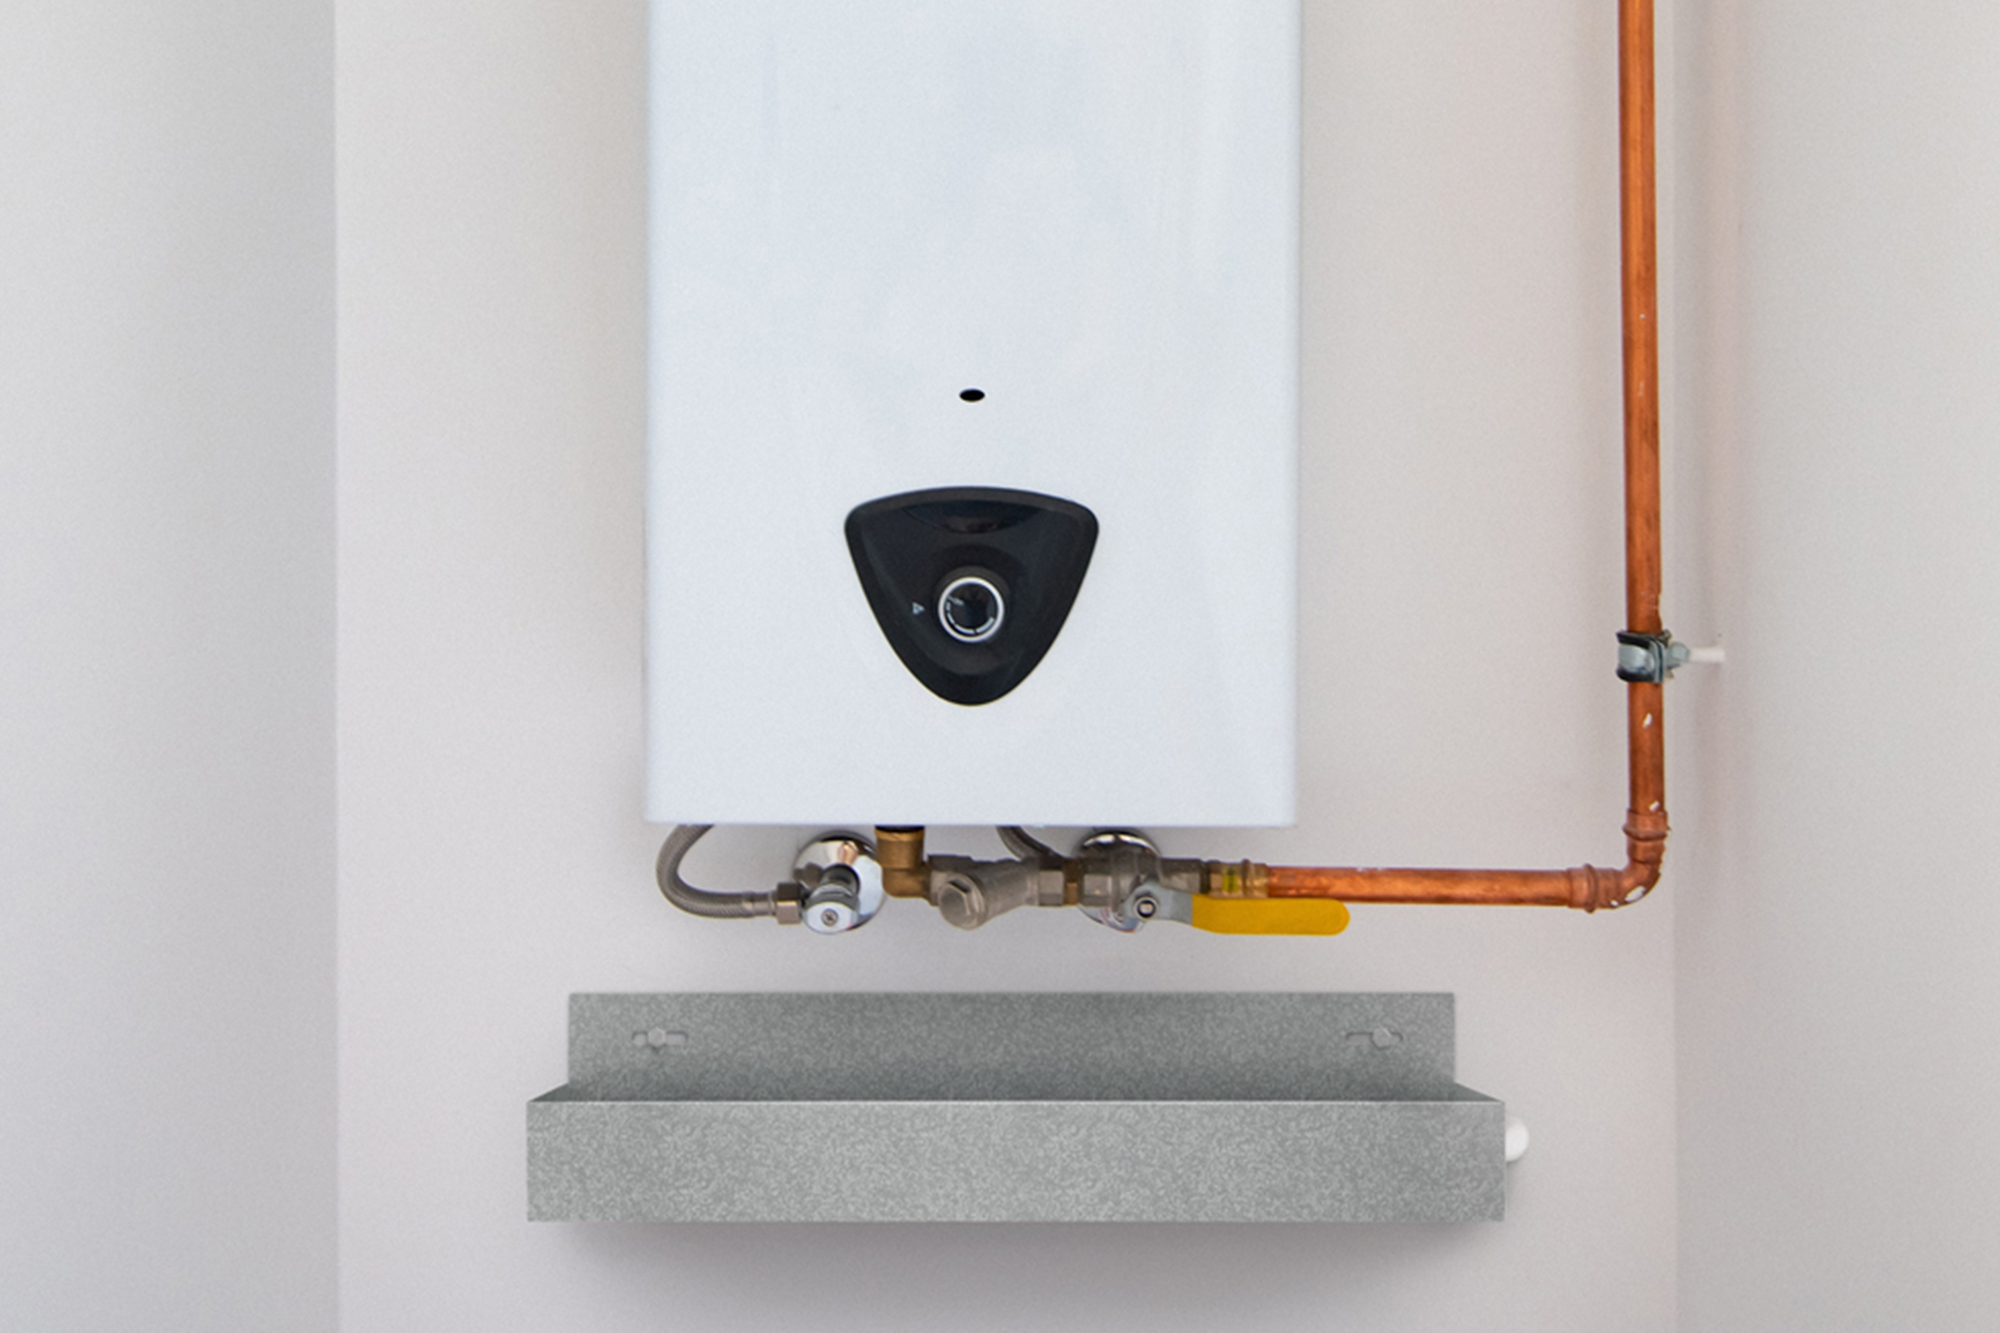 Wall Mounted Tankless Water Heater Drain Pan